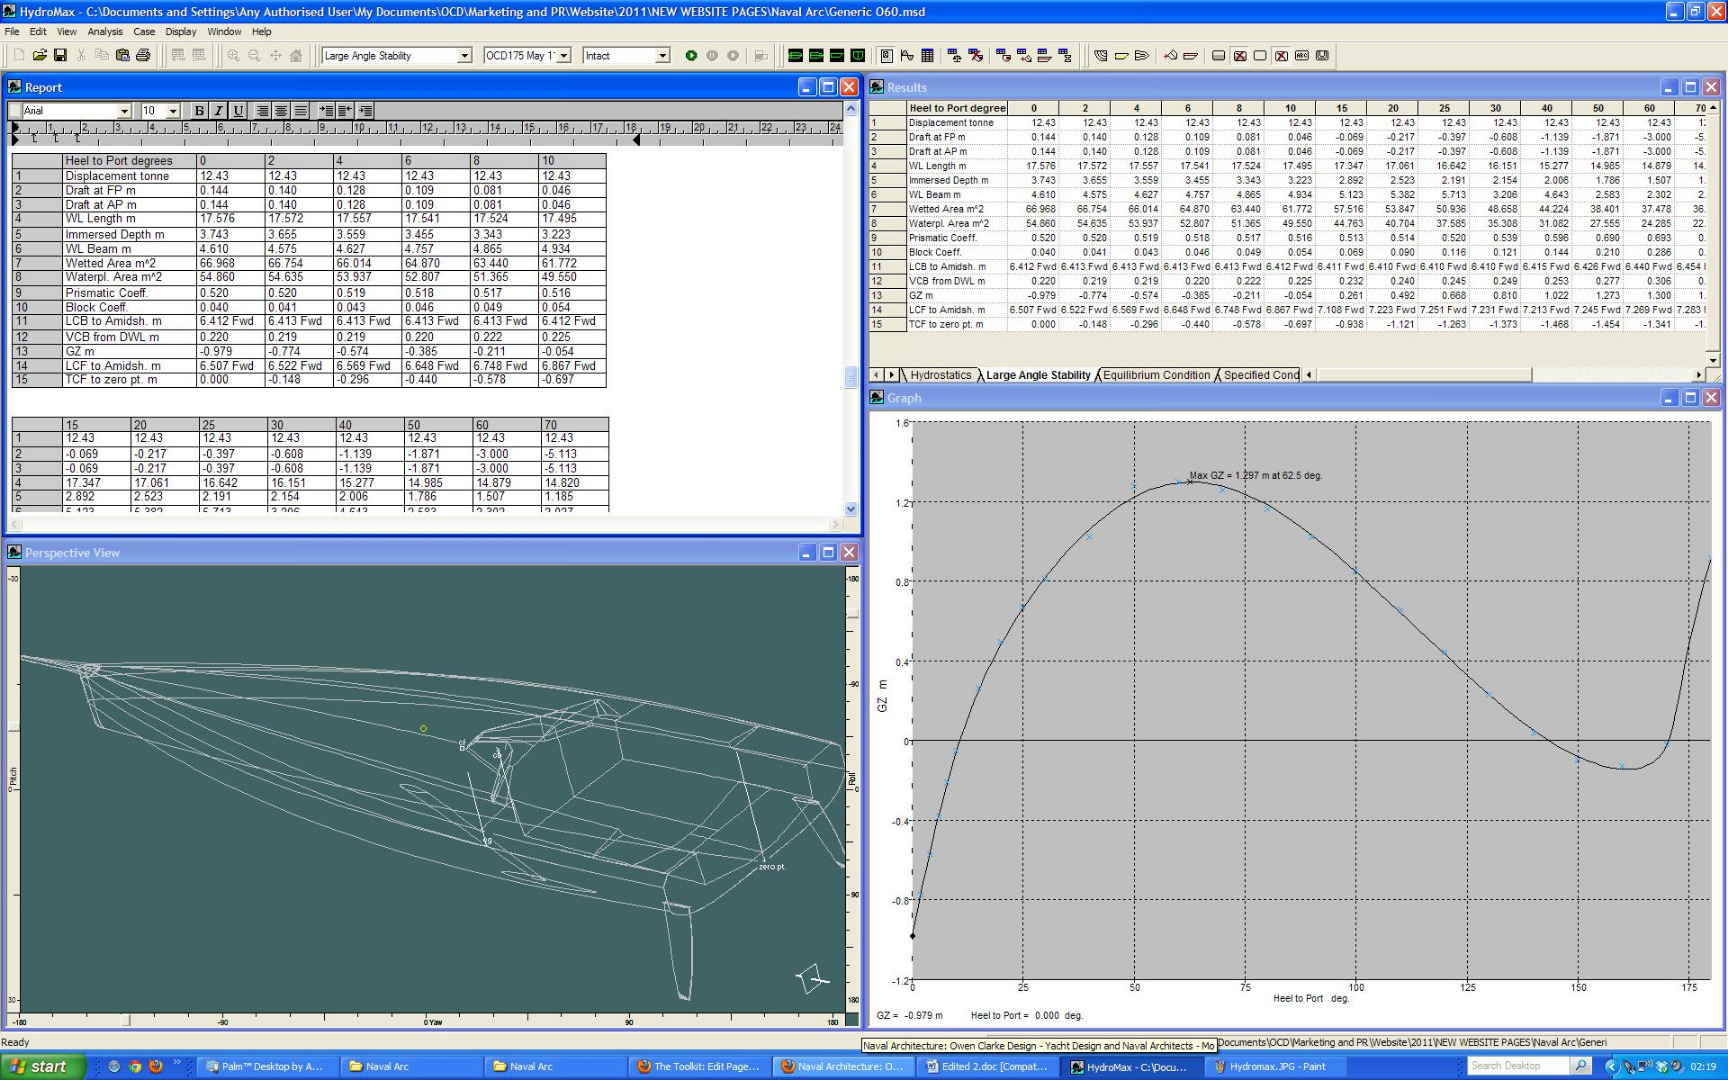 Hydromax is a naval architecture design software that enables a naval architect to undertake large angle stability calculations of motor and sailing yachts. These calculations are most commonly used to input data into a yacht VPP, fulfil the requirements of the RCD and calculate the information required to produce an MCA stability book. This includes calculation of intact stability, damage stability, tank flooding and where applicable allowance for the effects of ice accretion, the build up of ice on explorer and expedition yachts.